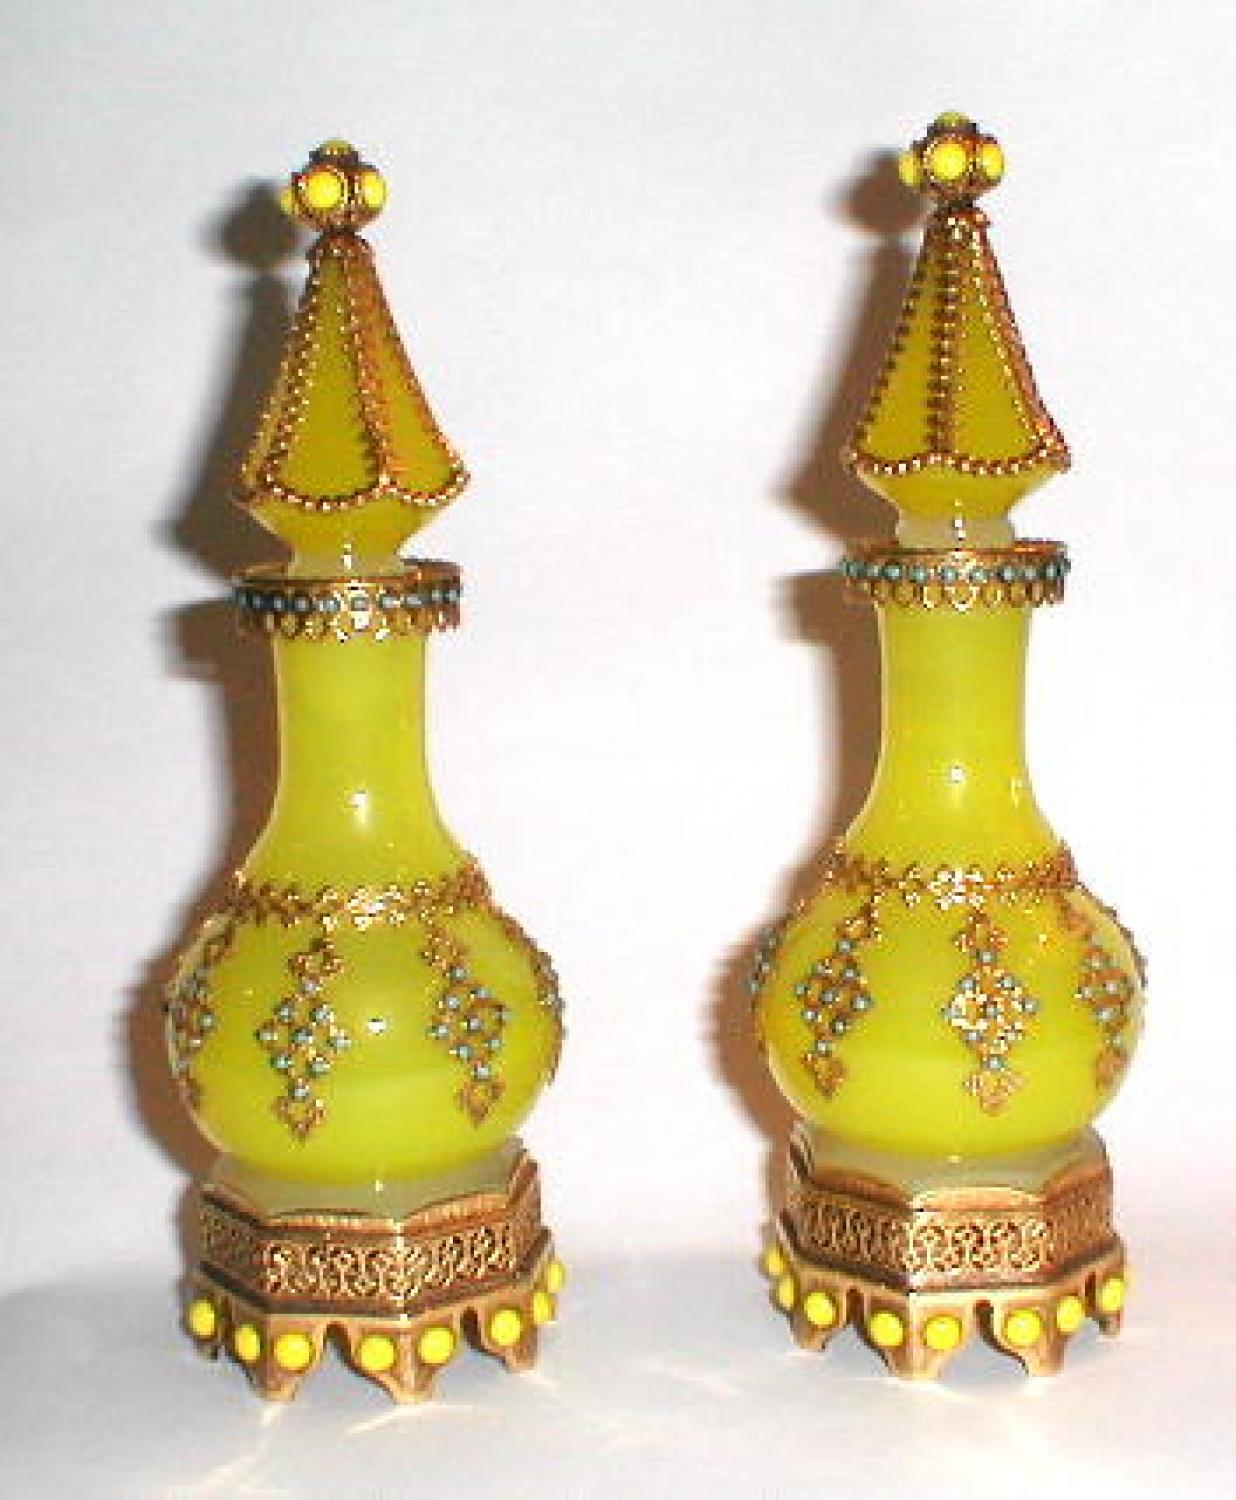 Pair French Yellow Opaline Scent Bottles